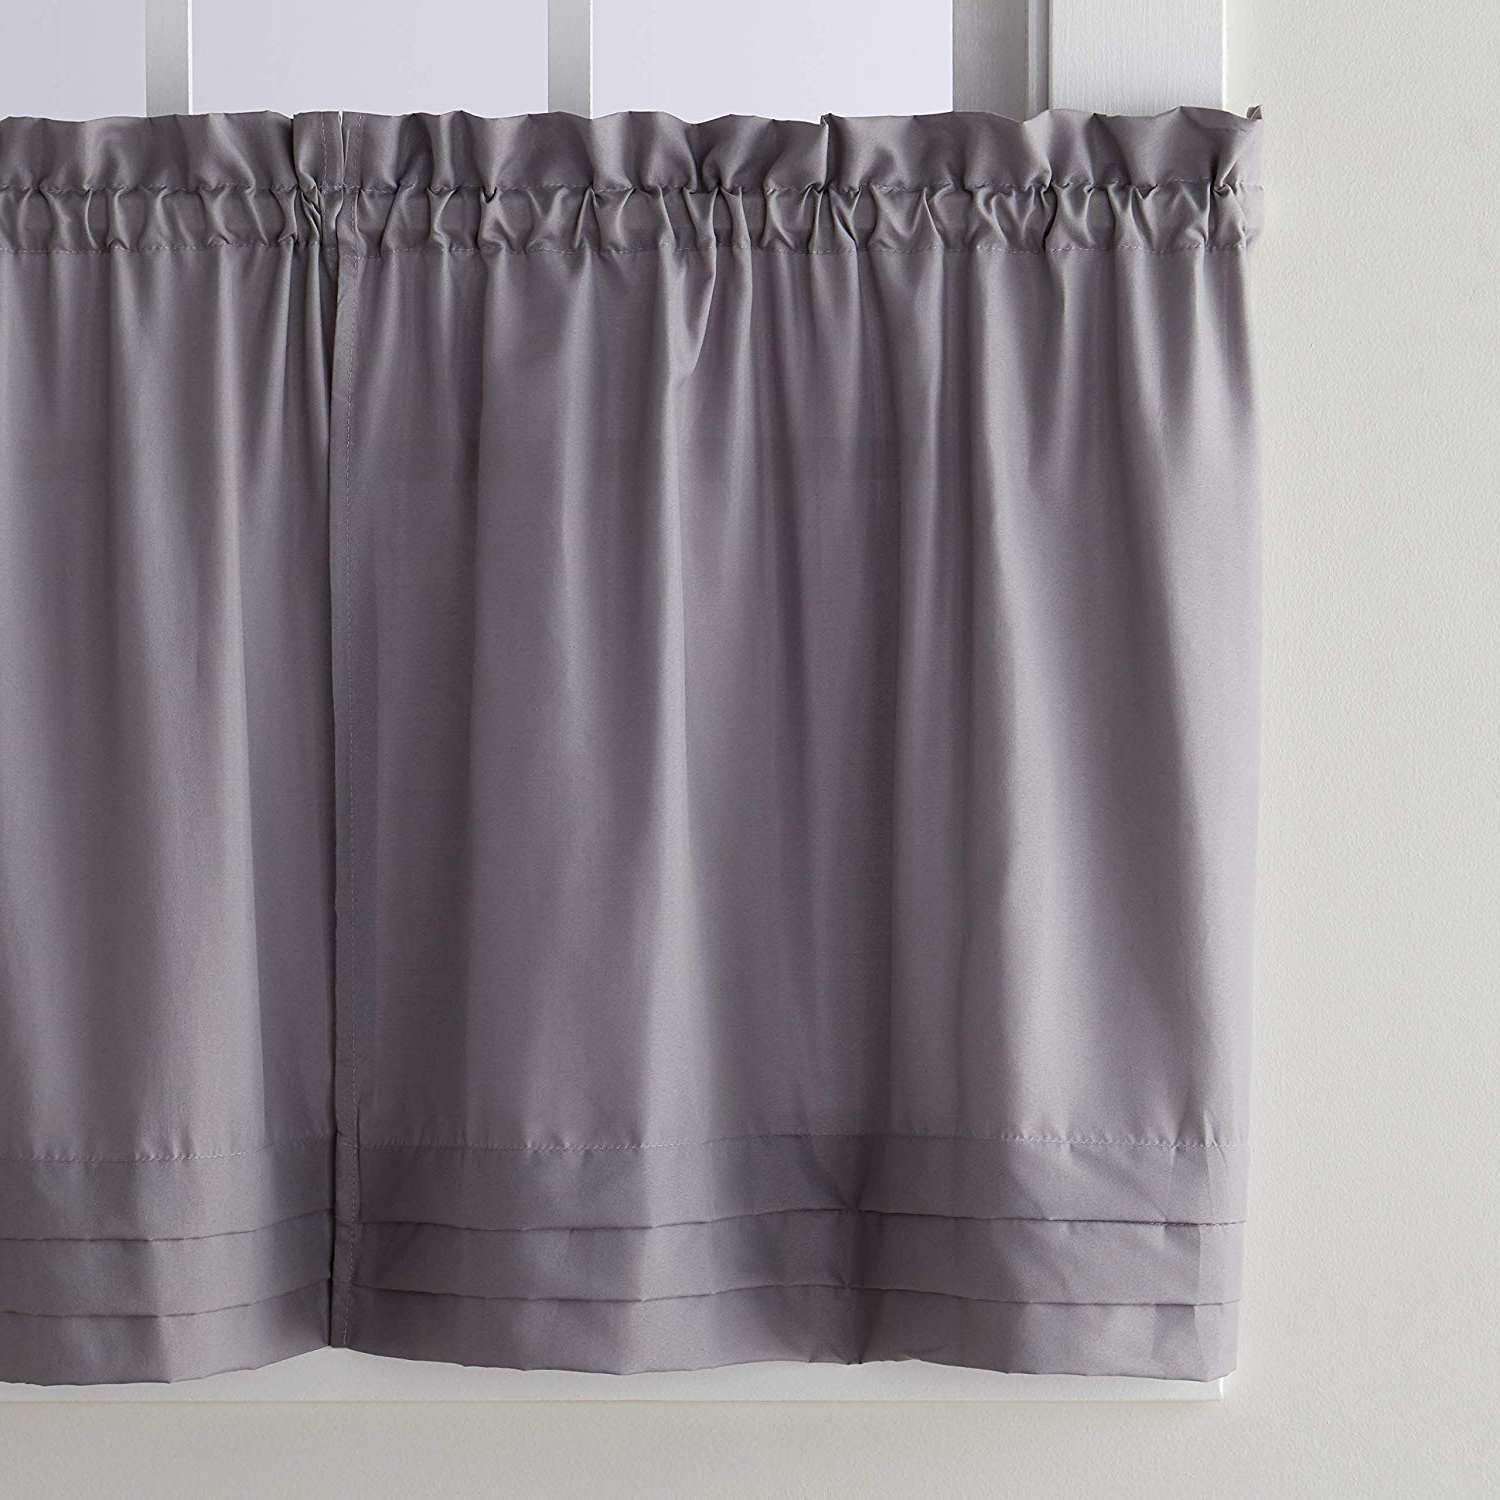 Fashionable Dove Gray Curtain Tier Pairs Inside Skl Homesaturday Knight Ltd (View 7 of 20)